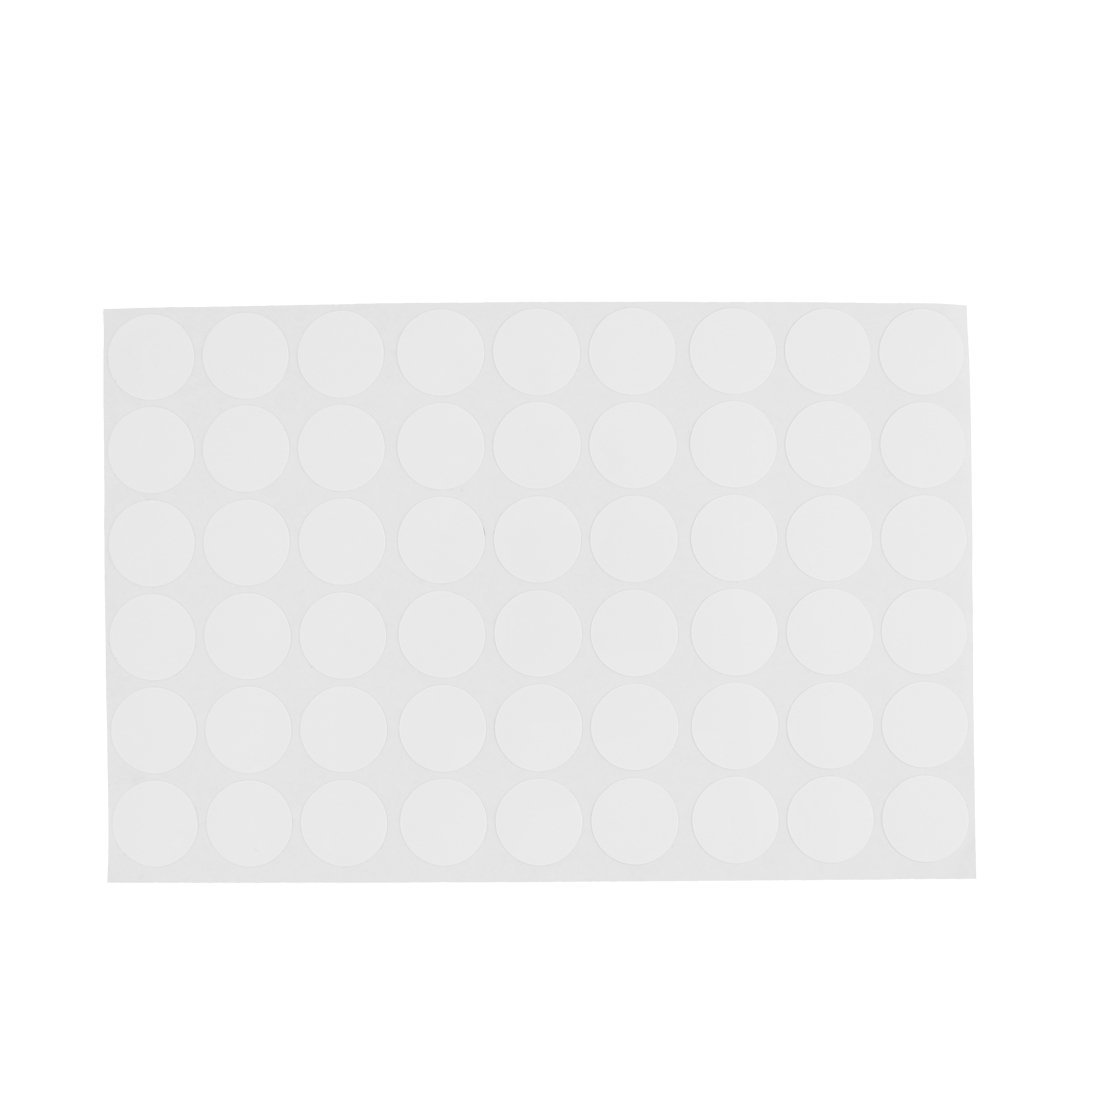 Brand New Wardrobe Cupboard Self-adhesive Screw Covers Caps Stickers 54 In 1 White